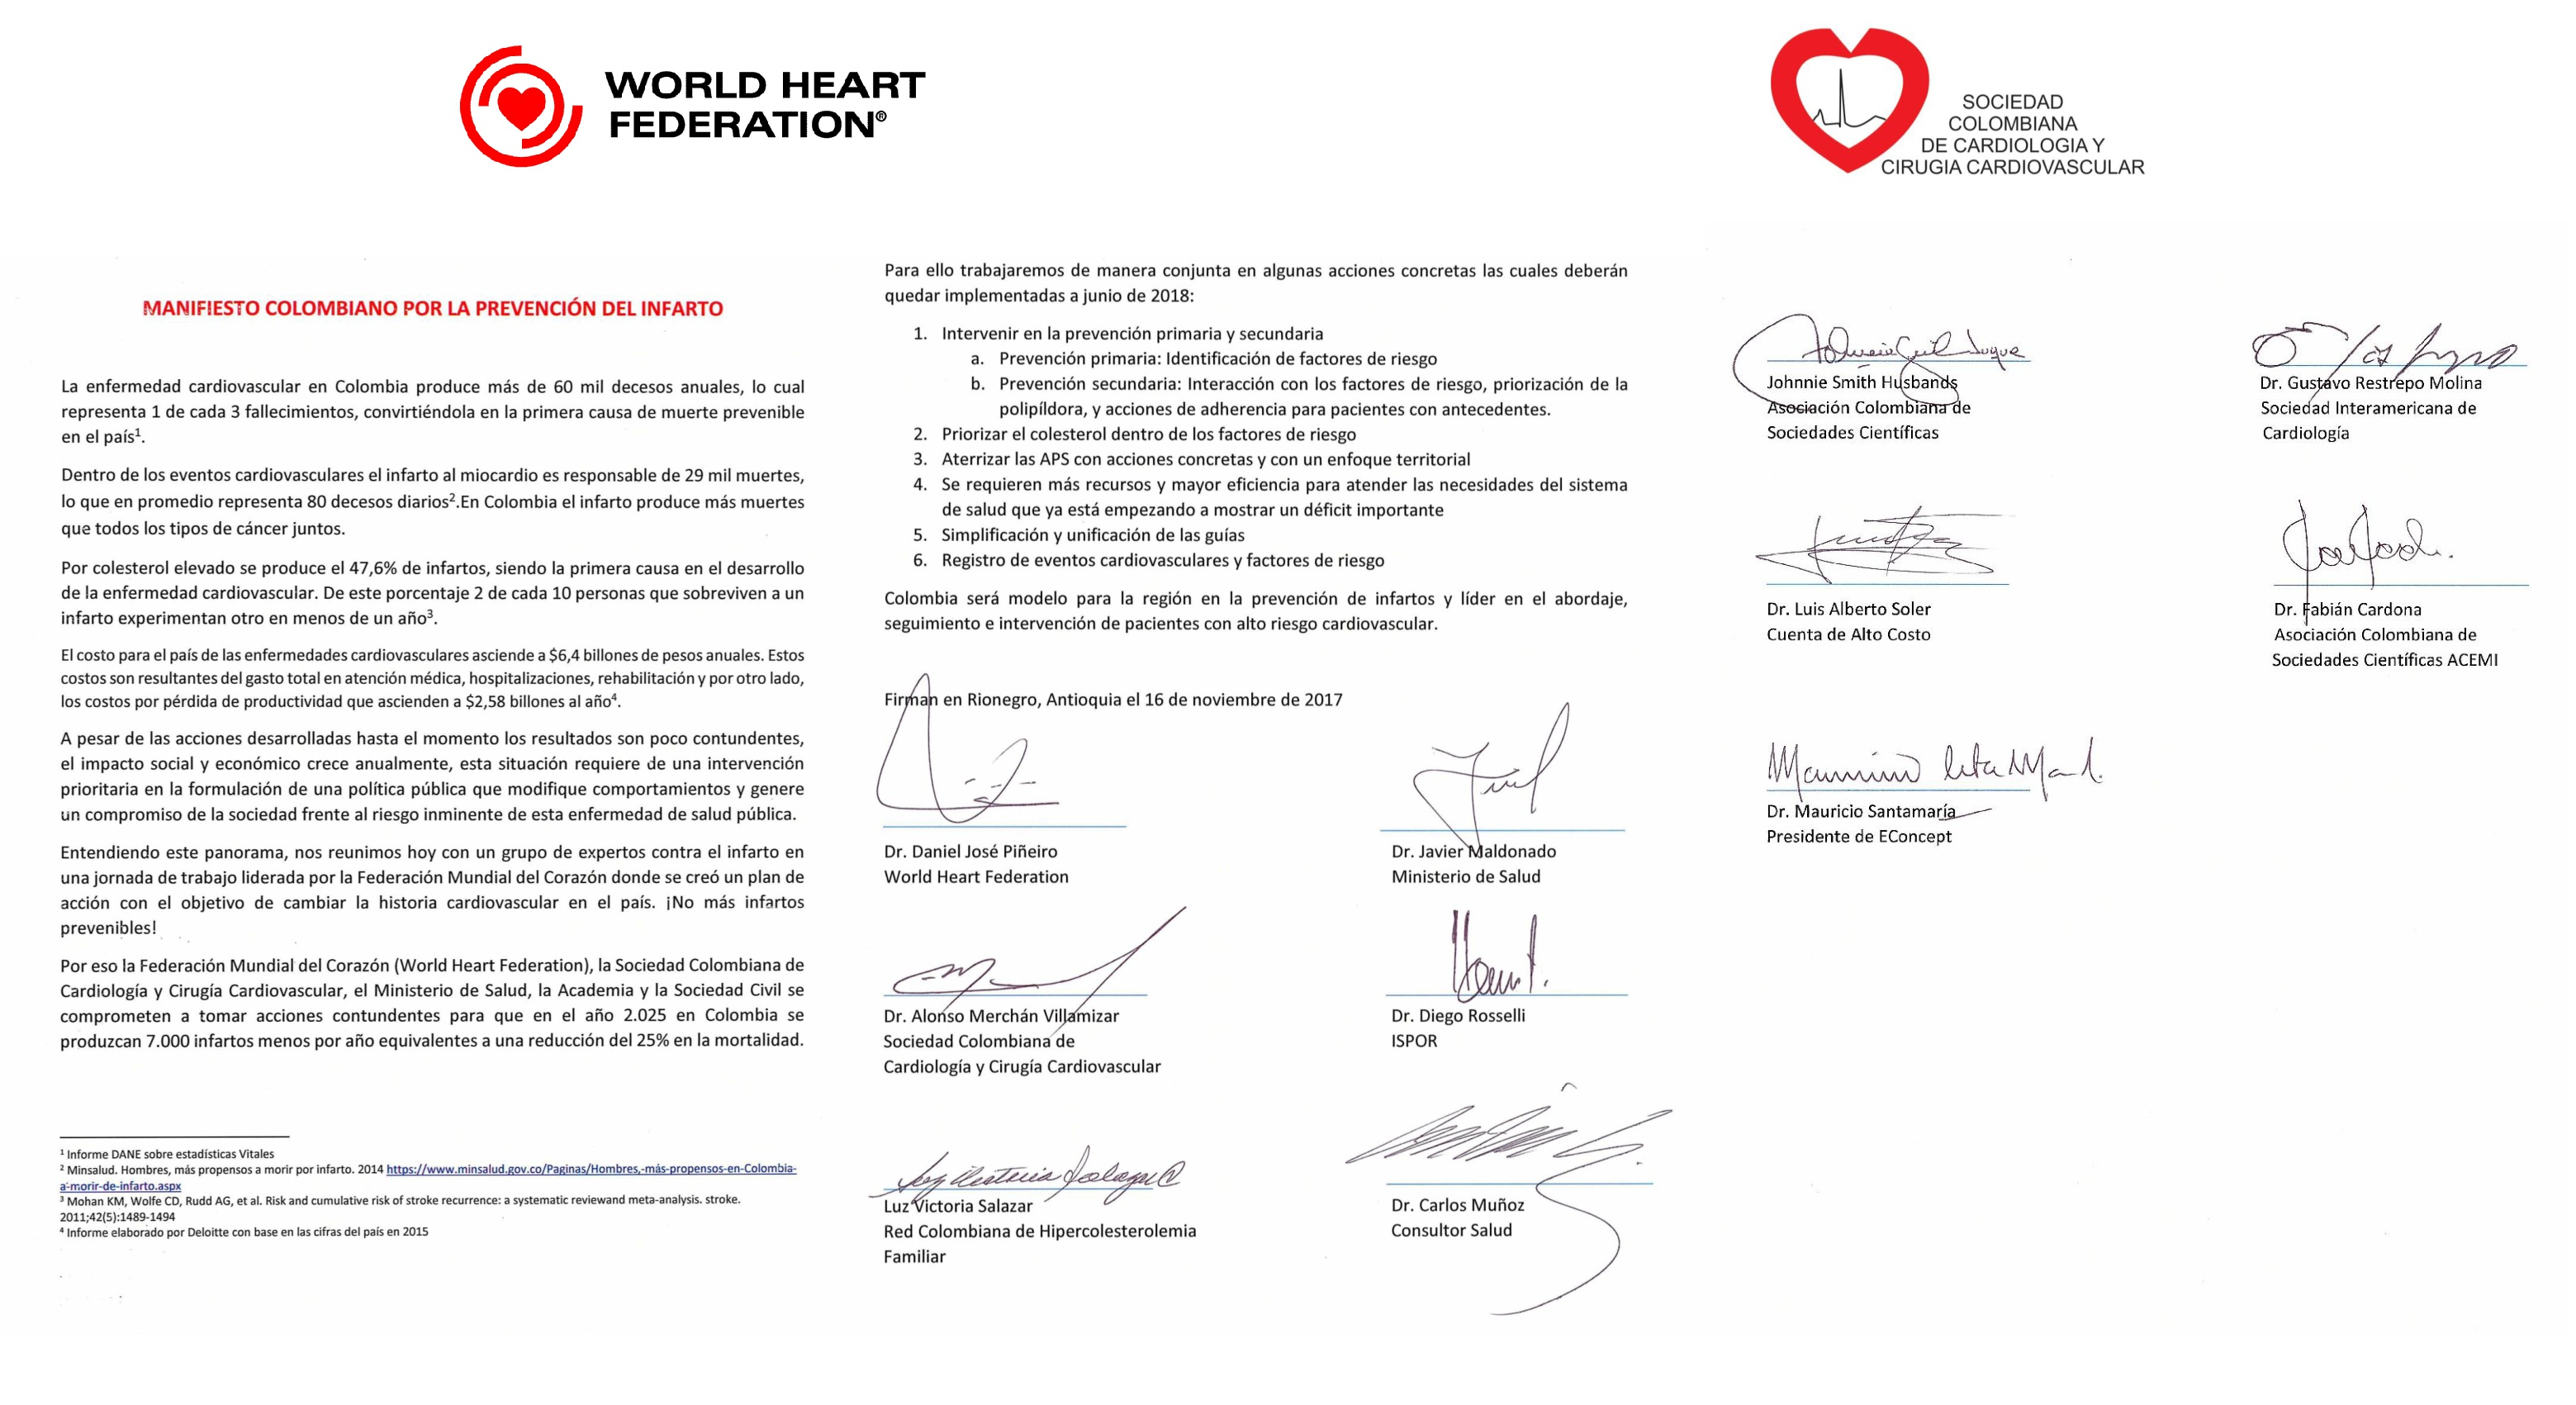 WHF and Colombian Society of Cardiology and Cardiovascular Surgery ...